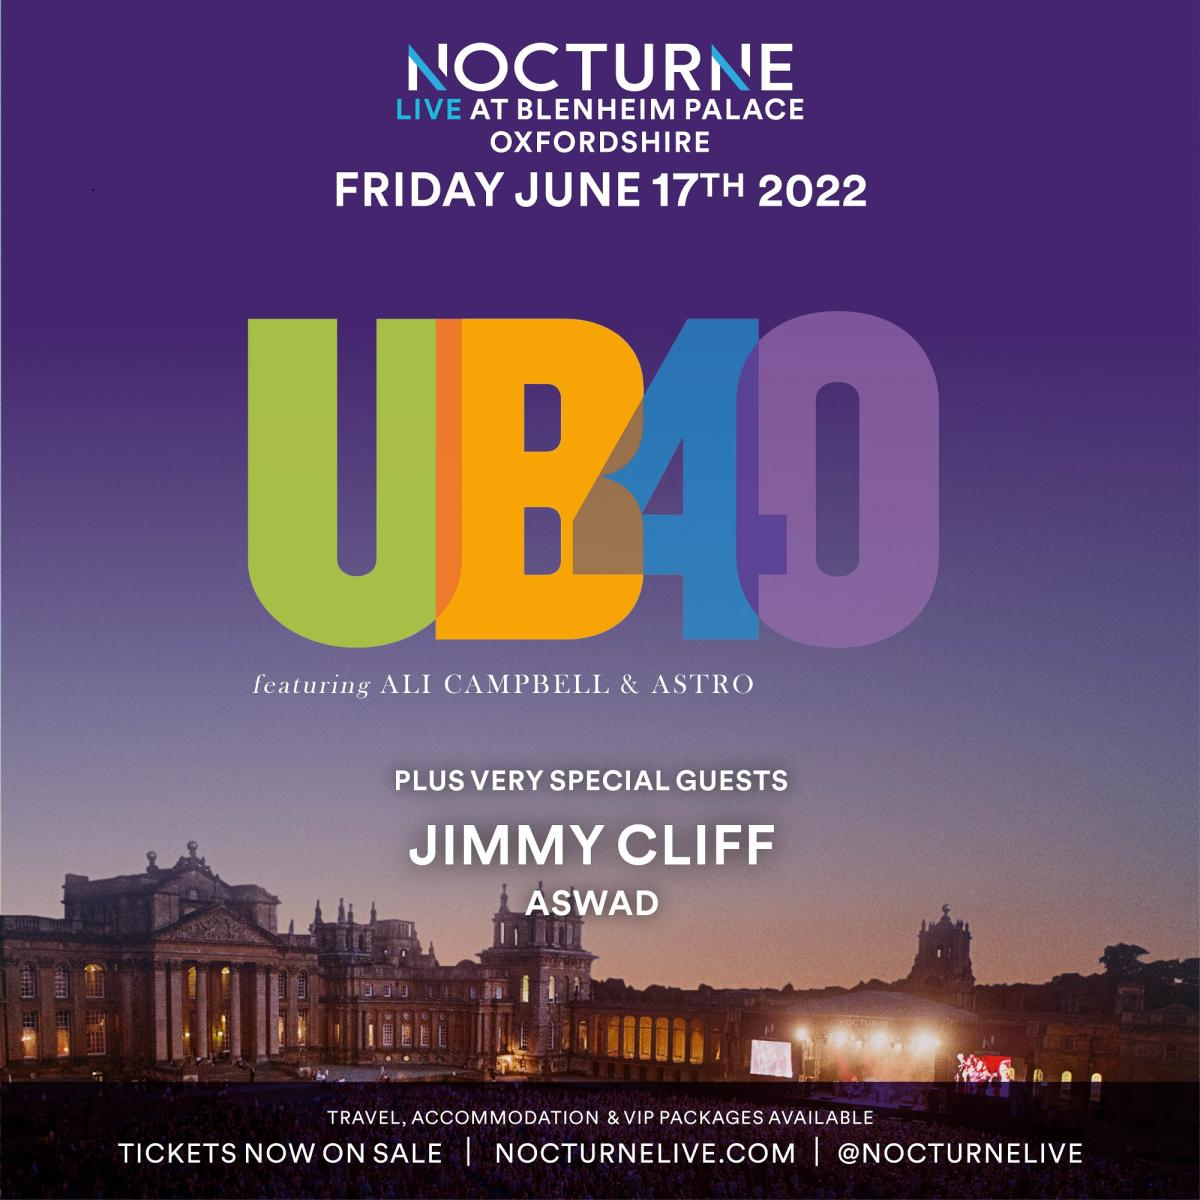 Nocturne Live 2022 at Blenheim Palace - Poster 03